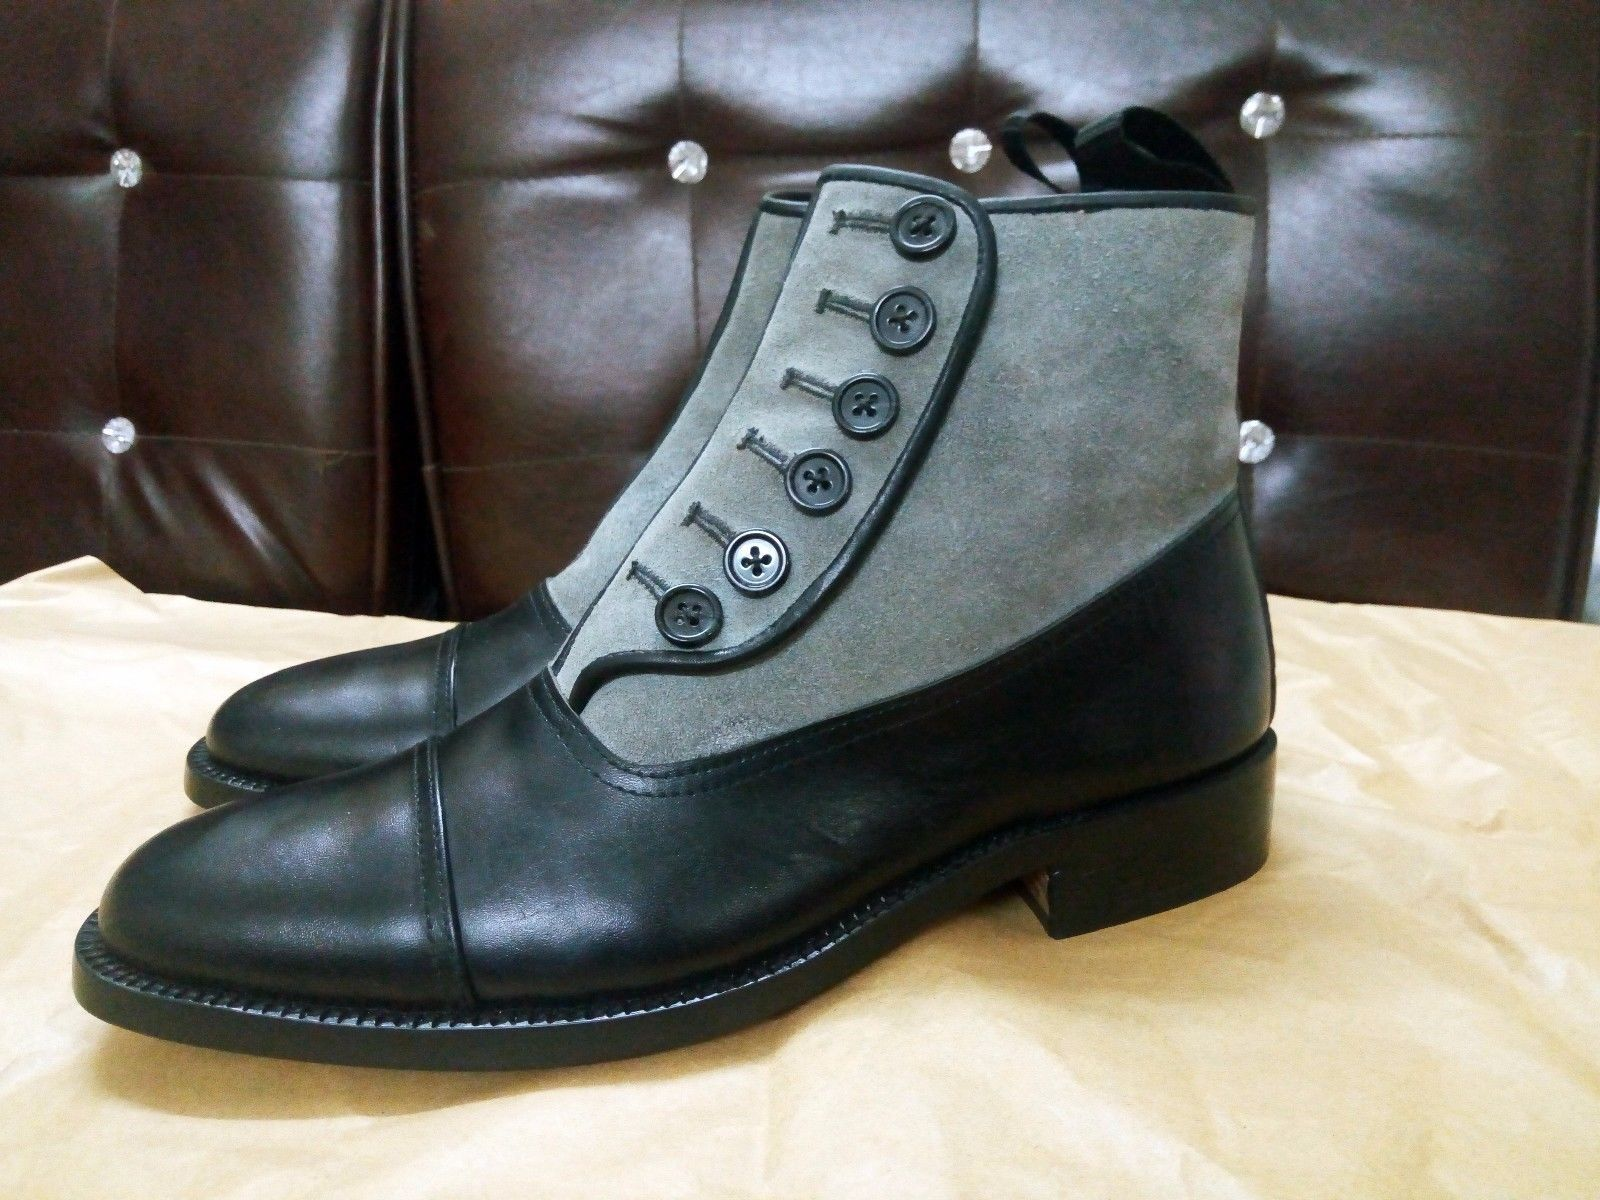 MENS HANDMADE BUTTON TOP BOOTS FORMAL DRESS FASHION TUXEDO OFFICE BUSINESS BOOTS